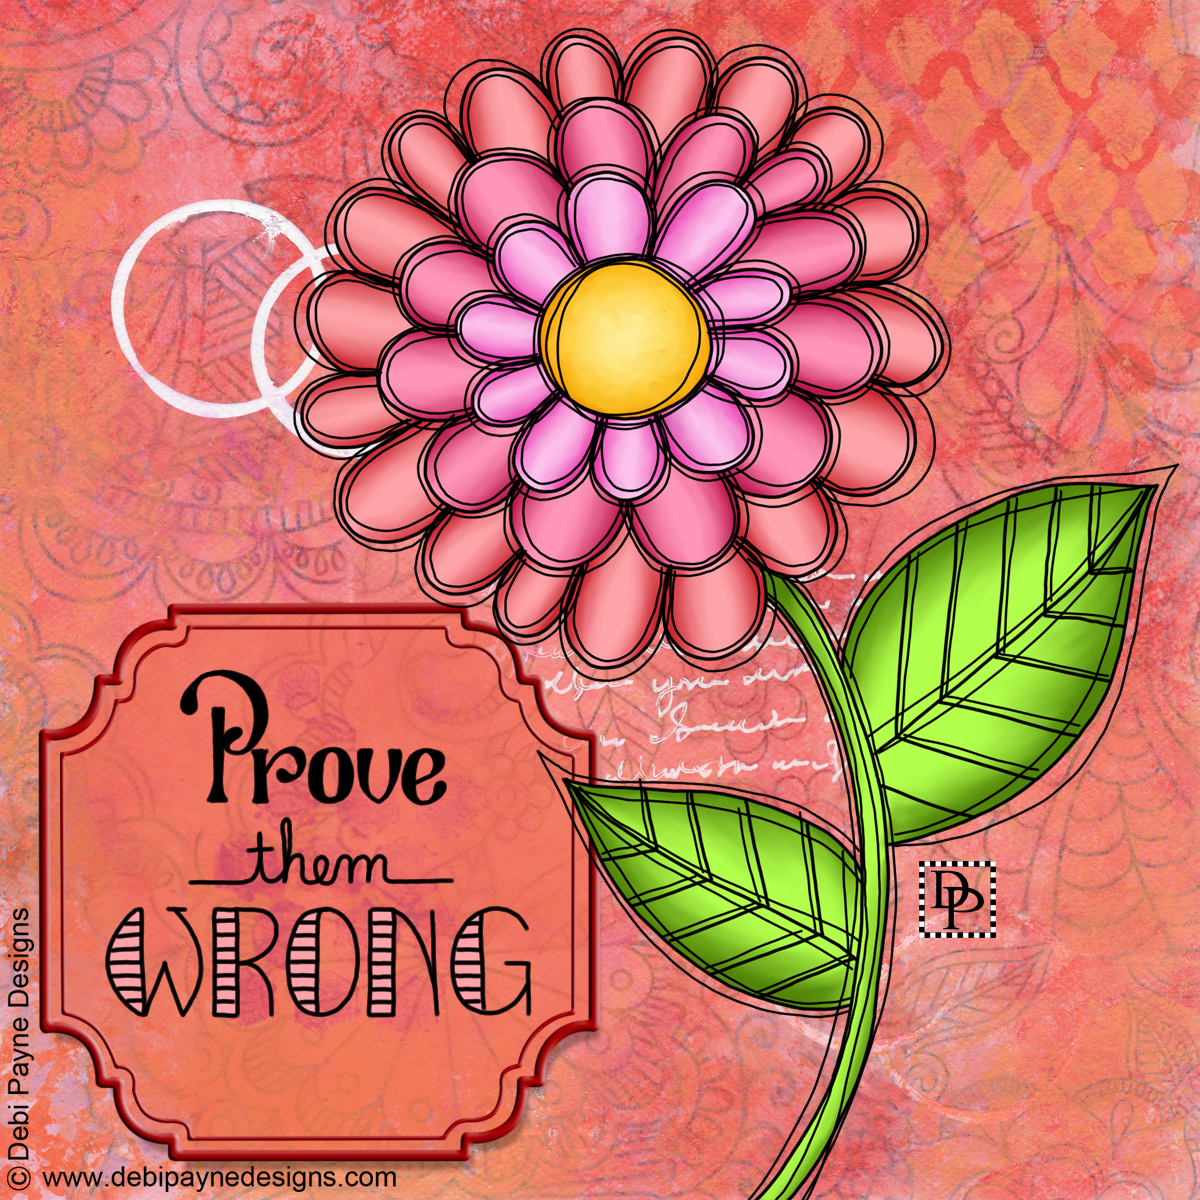 Image: Doodle flower with mixed media background and text Prove them Wrong